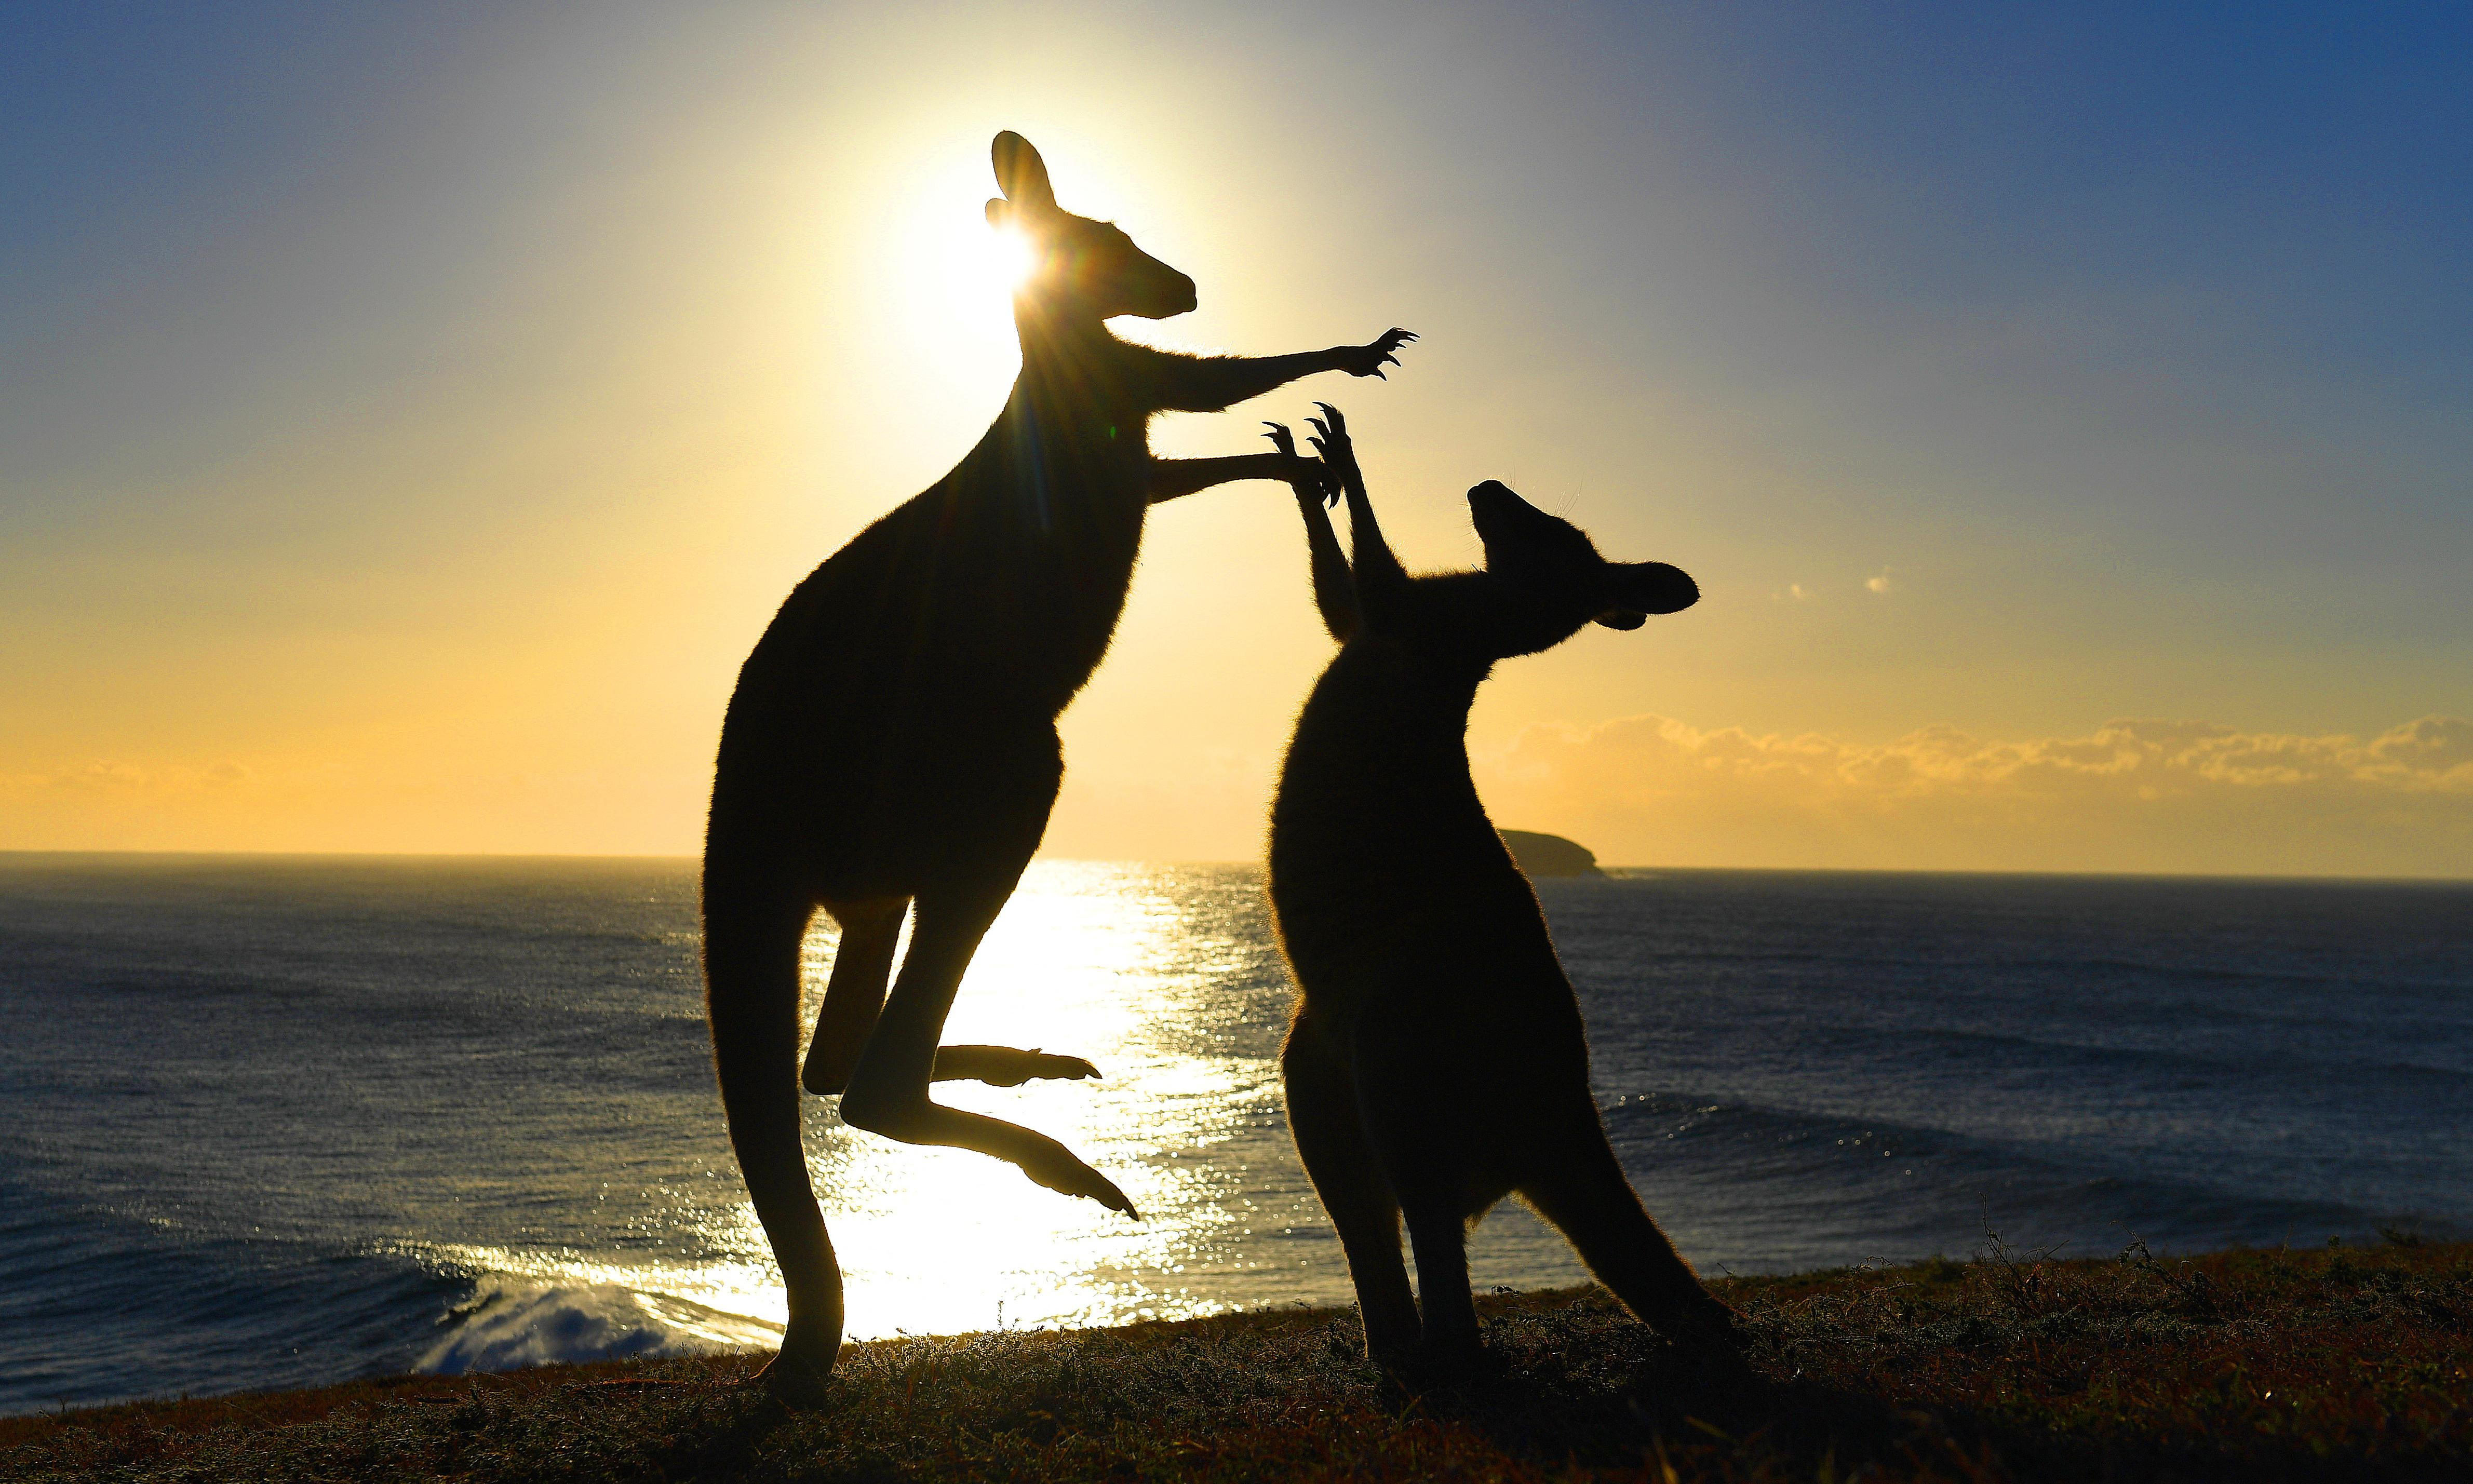 'Kangaroo court': what have marsupials got to do with White House politics?